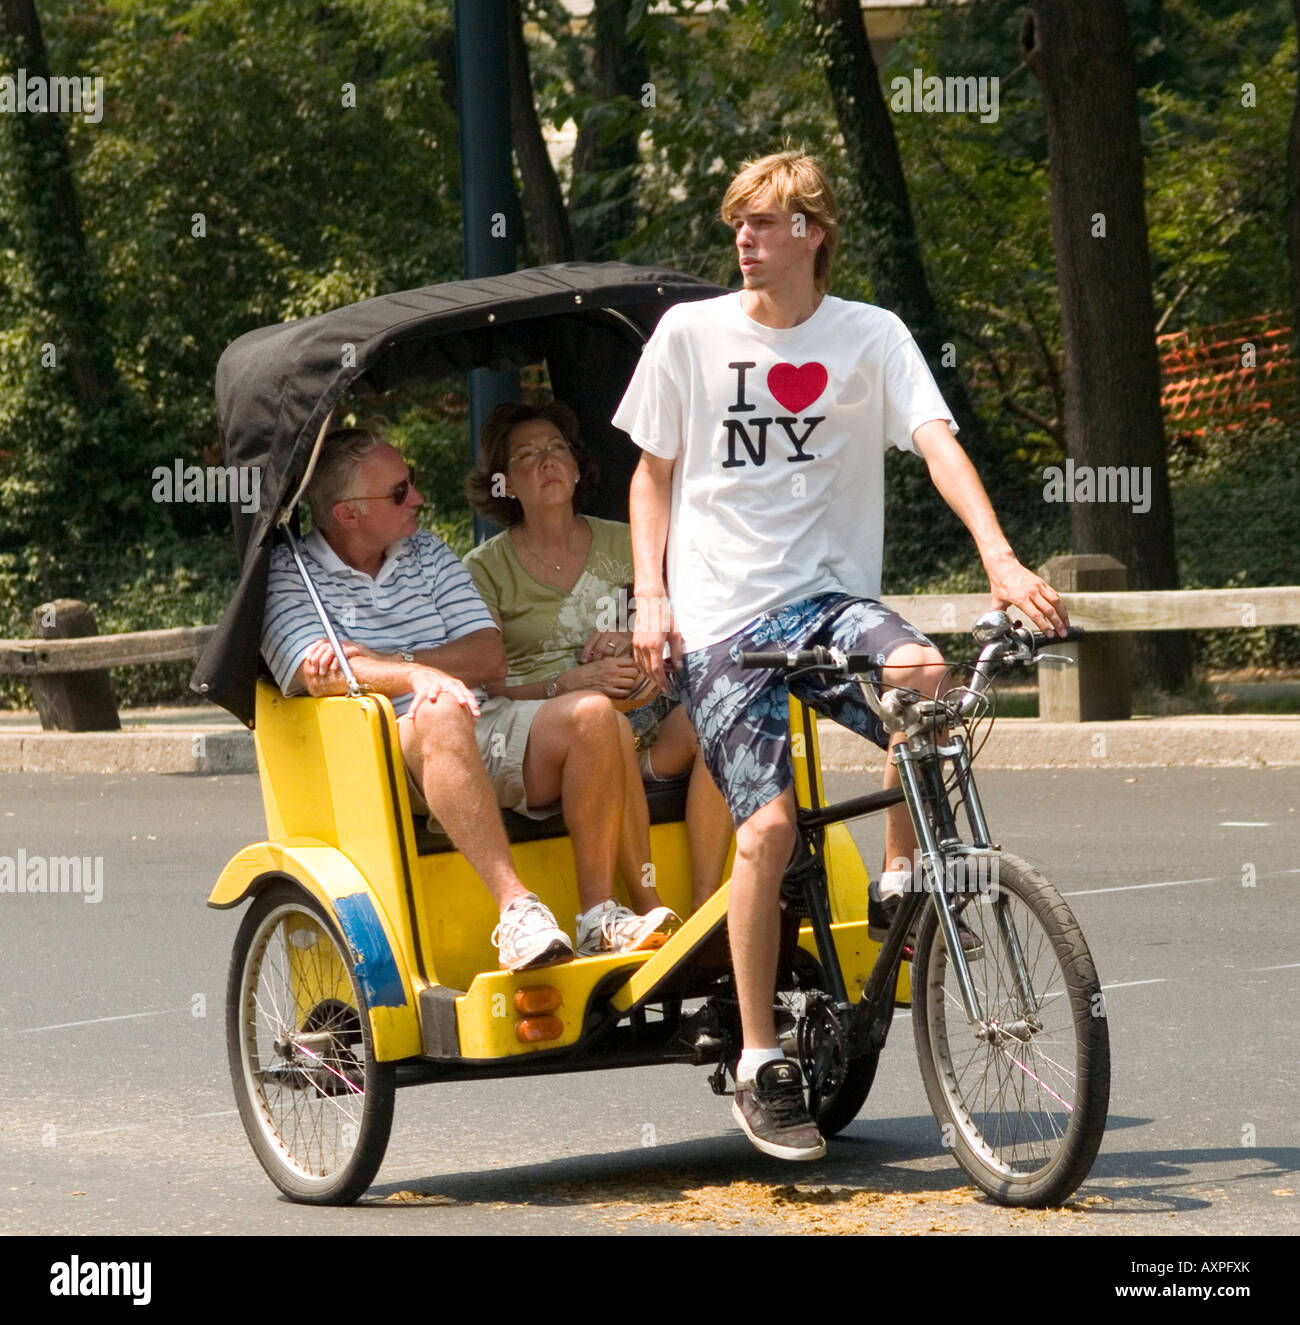 Tourists Getting A Ride From A Taxi Bike In Central Park